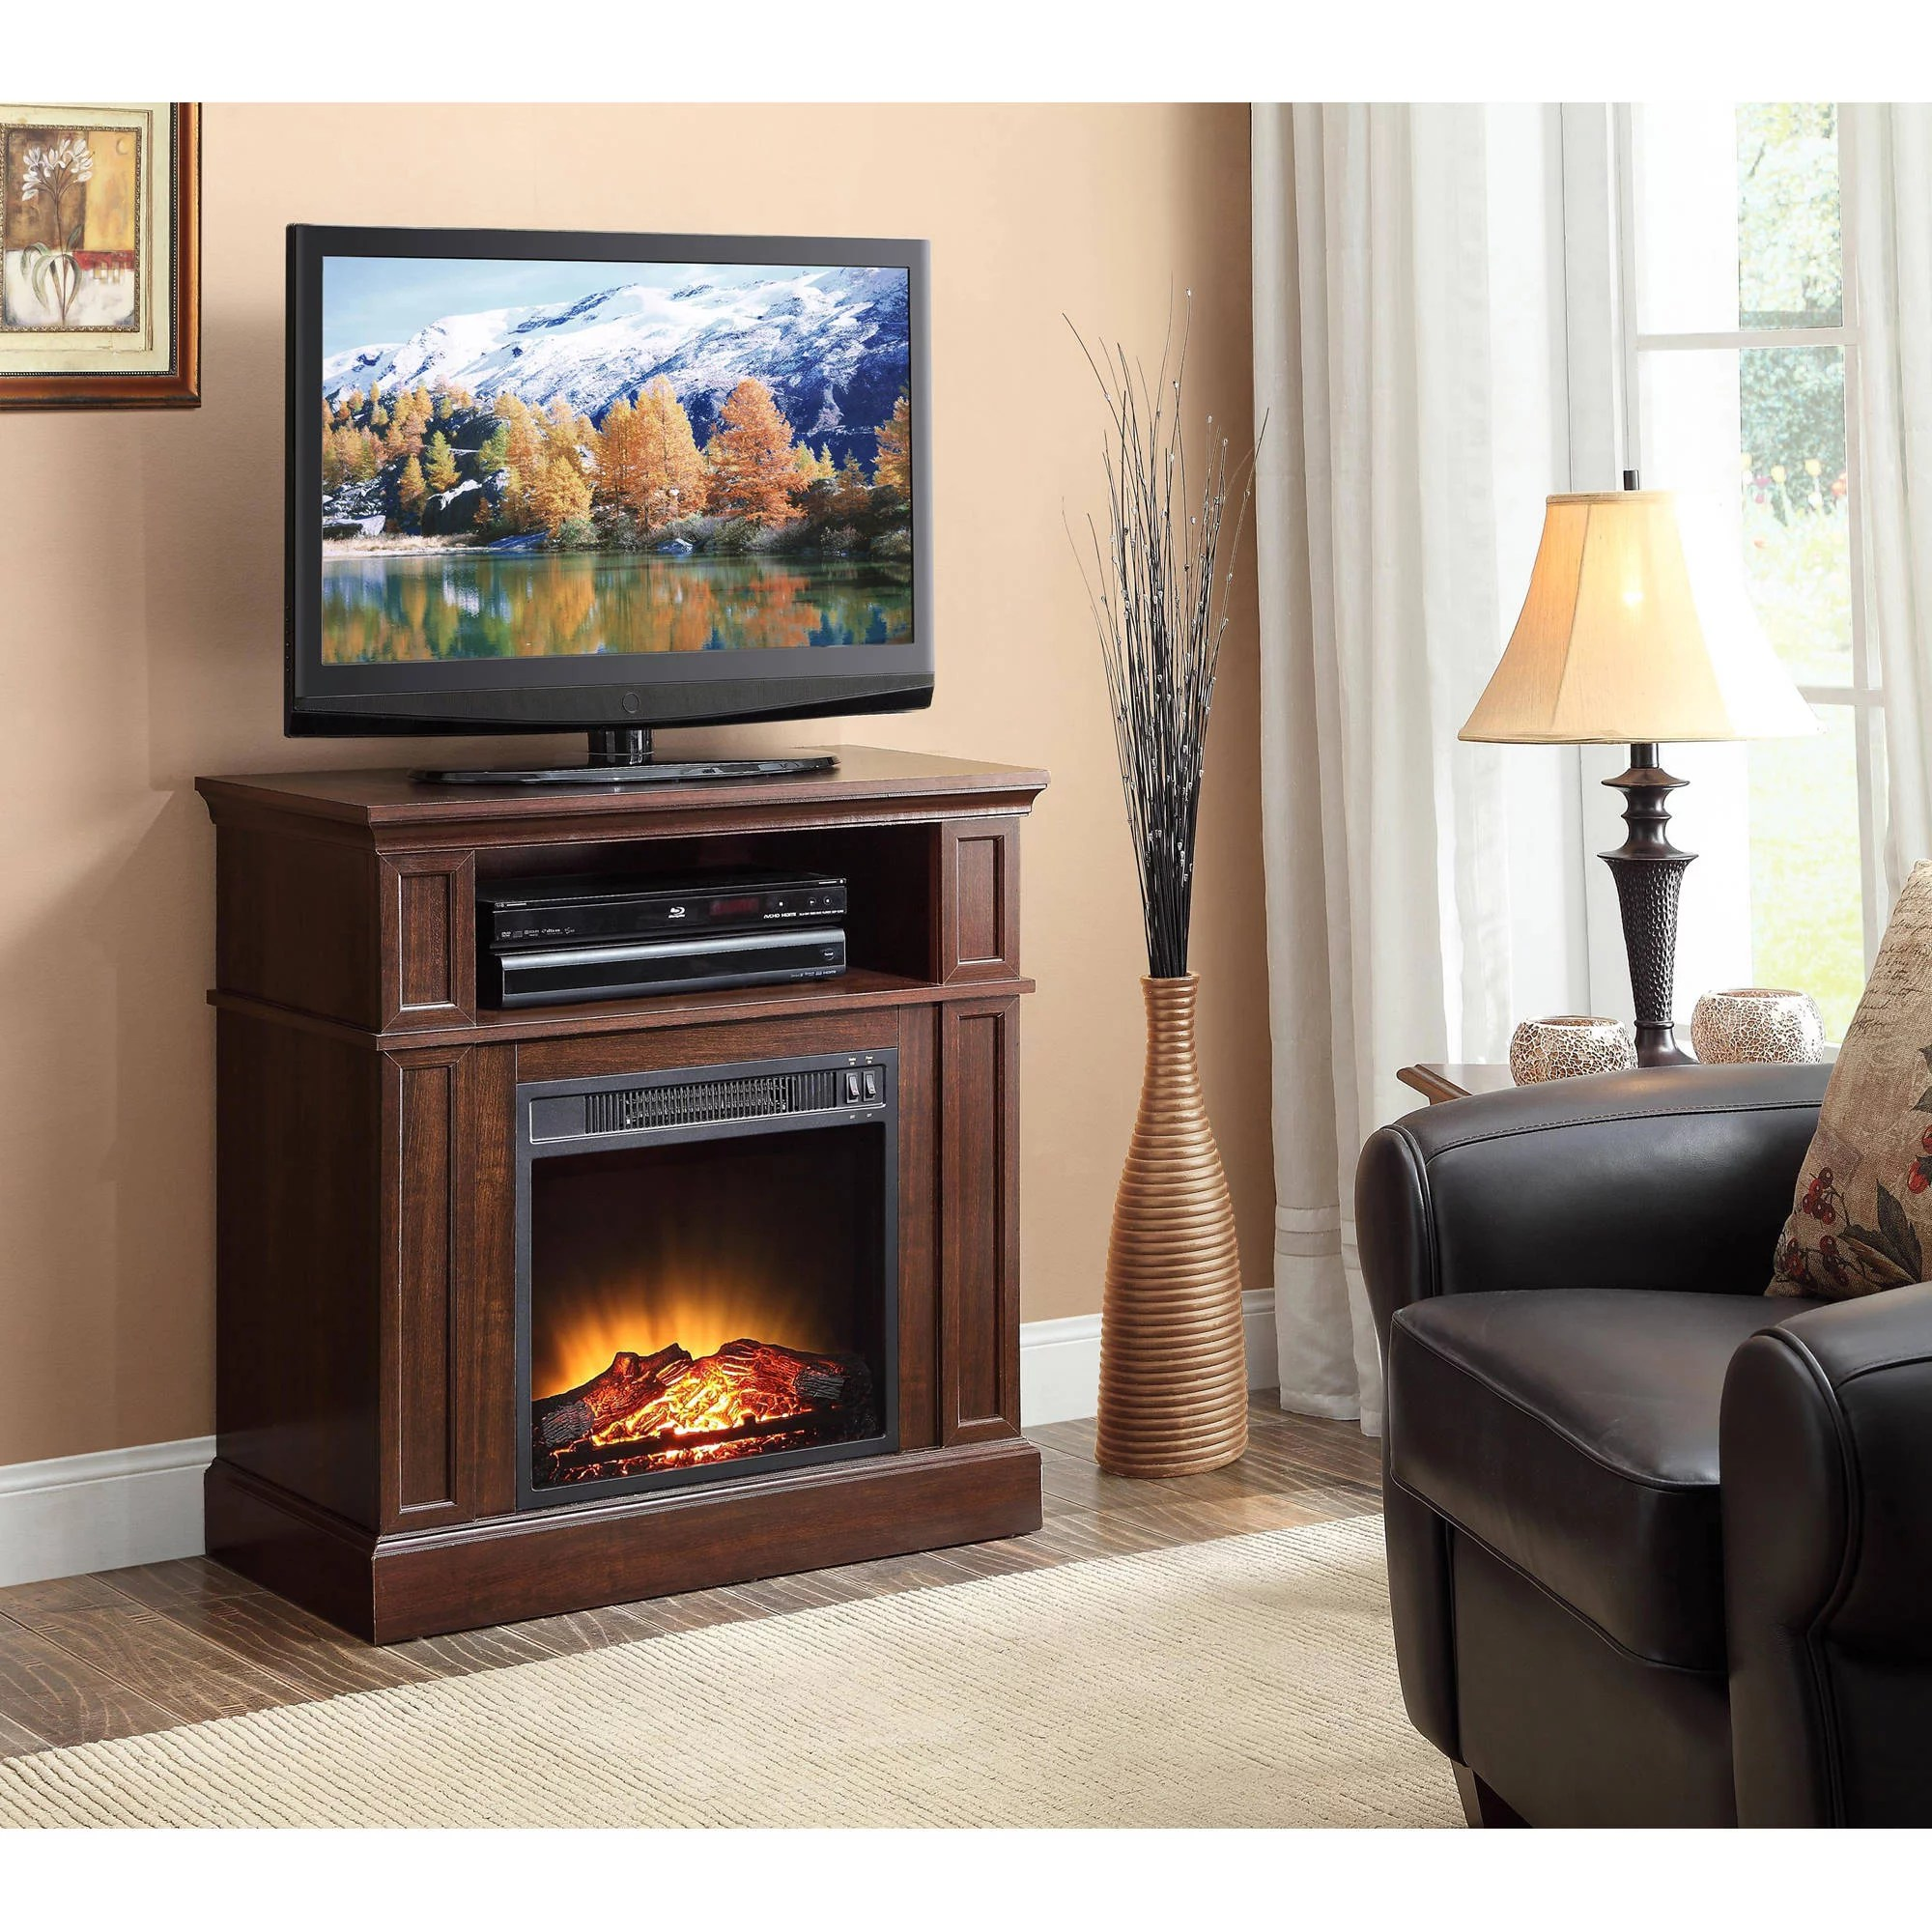 Walmart Black Electric Fireplace Ameriwood Home Barrow Creek Electric Fireplace Tv Stand For Tvs Up To 60